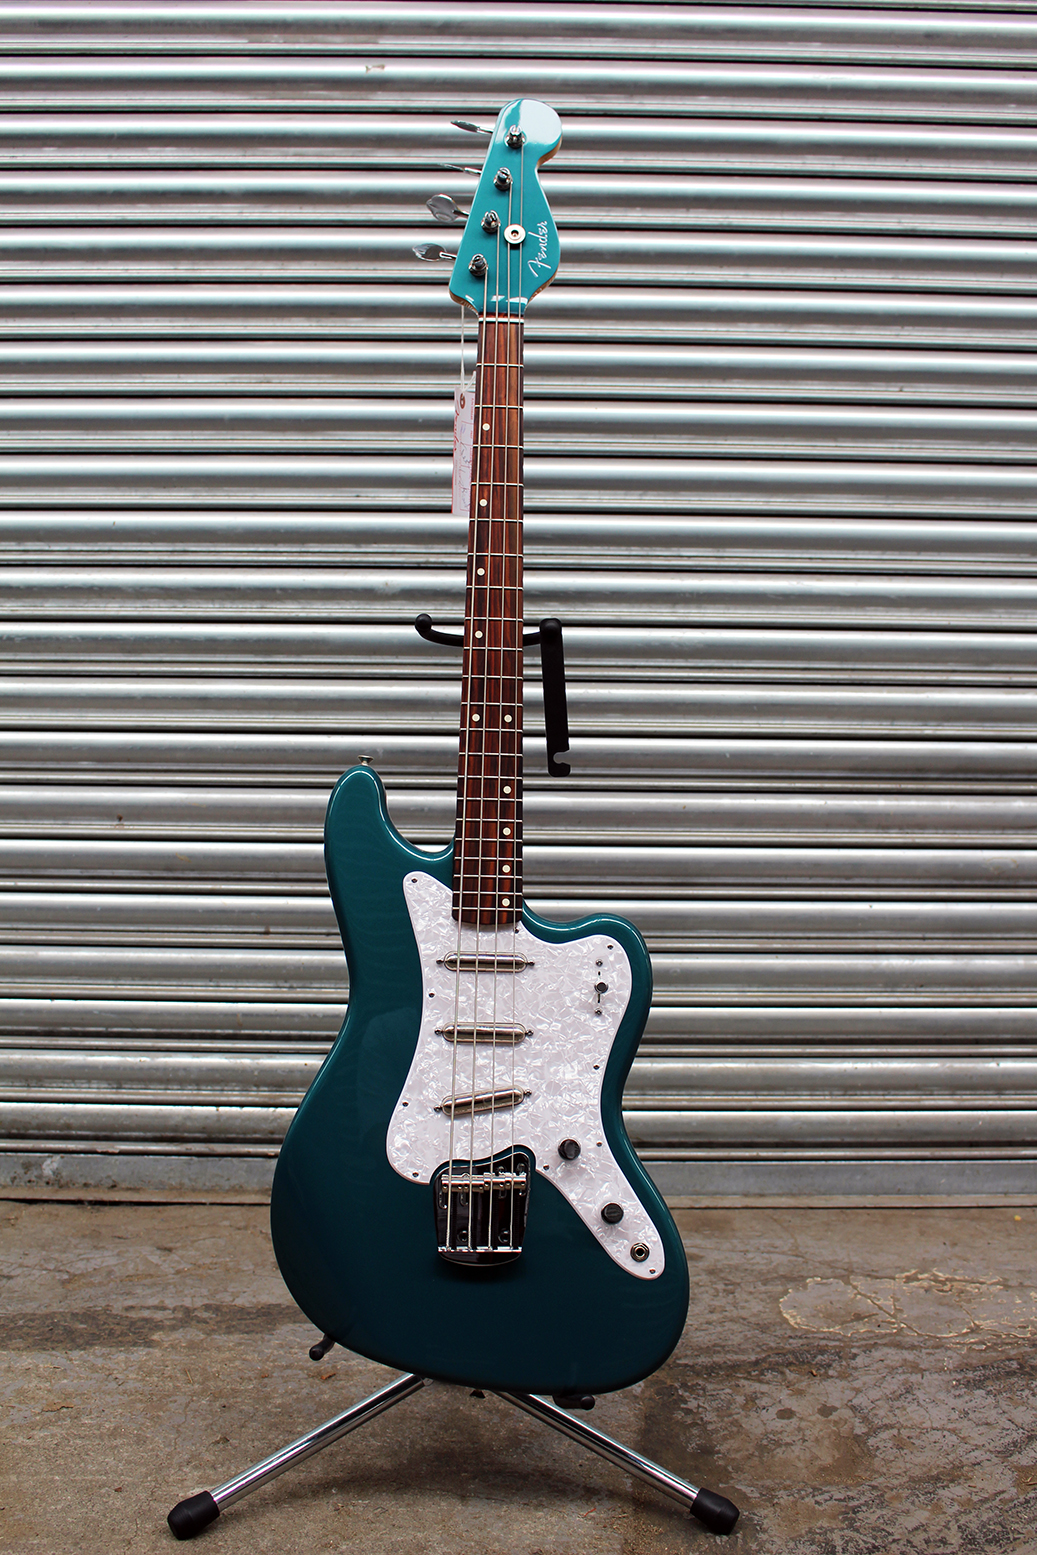 Short Scale Basses : sold fender rascal short scale bass classic player series as new with tags short ~ Russianpoet.info Haus und Dekorationen